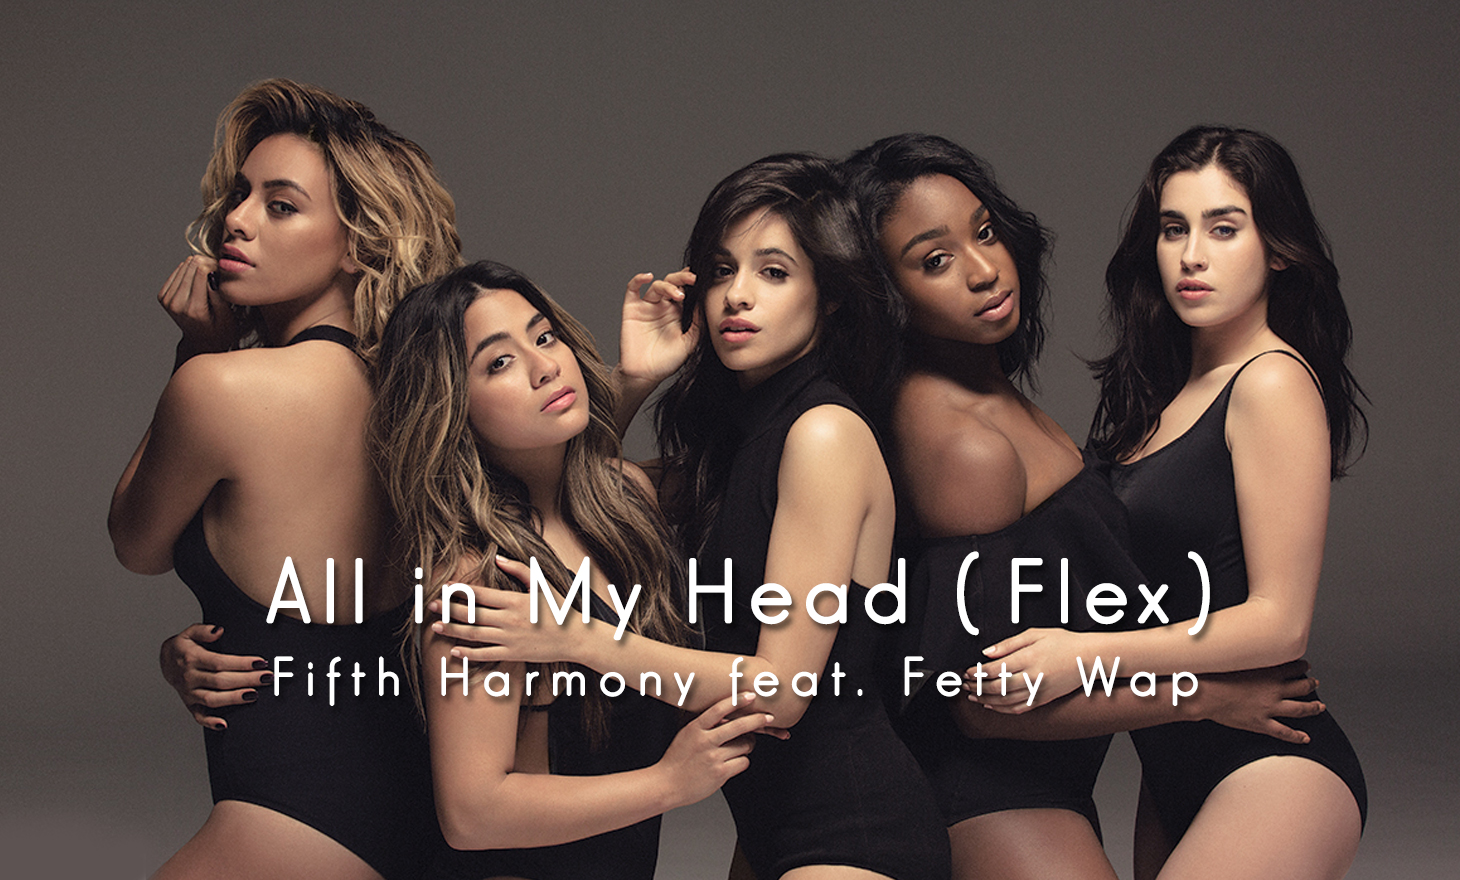 Fifth Harmony(フィフス・ハーモニー):All in My Head